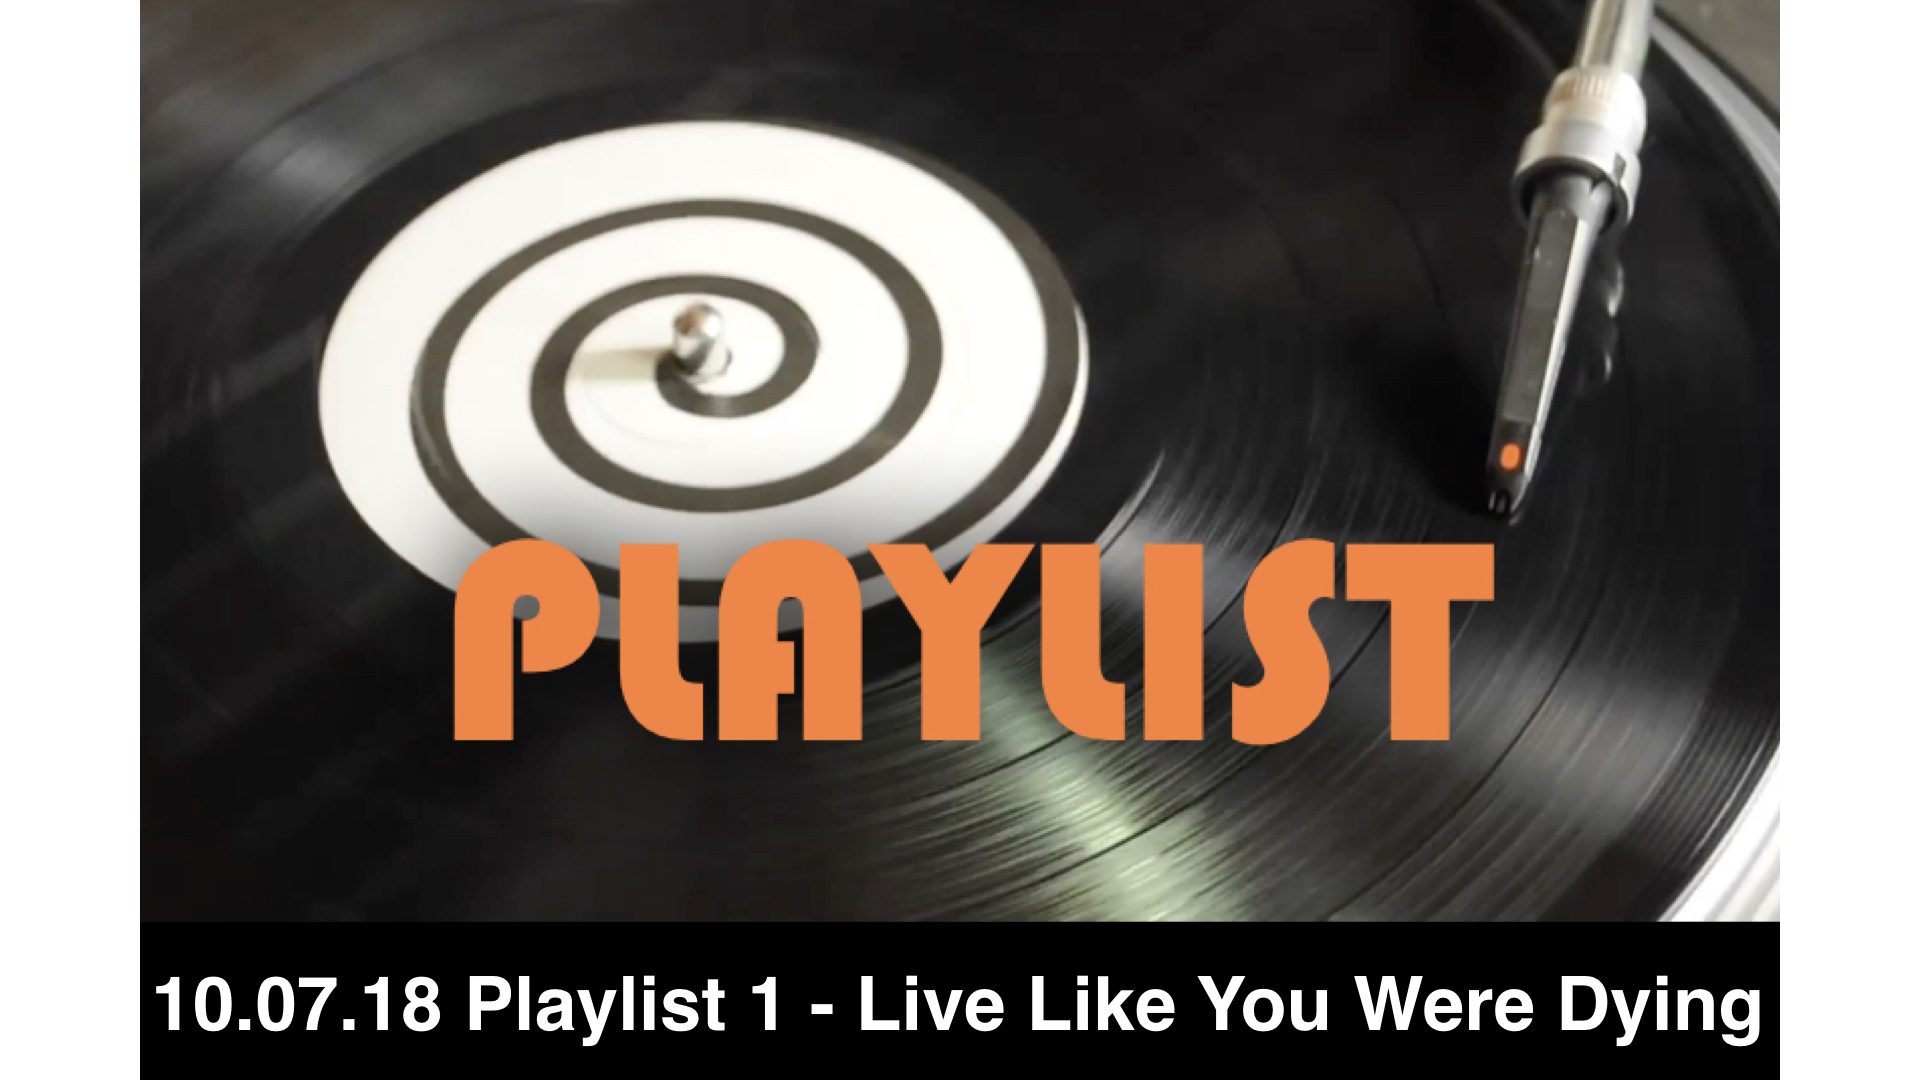 10.07.18 Playlist 1 - Live Like You Were Dyin'